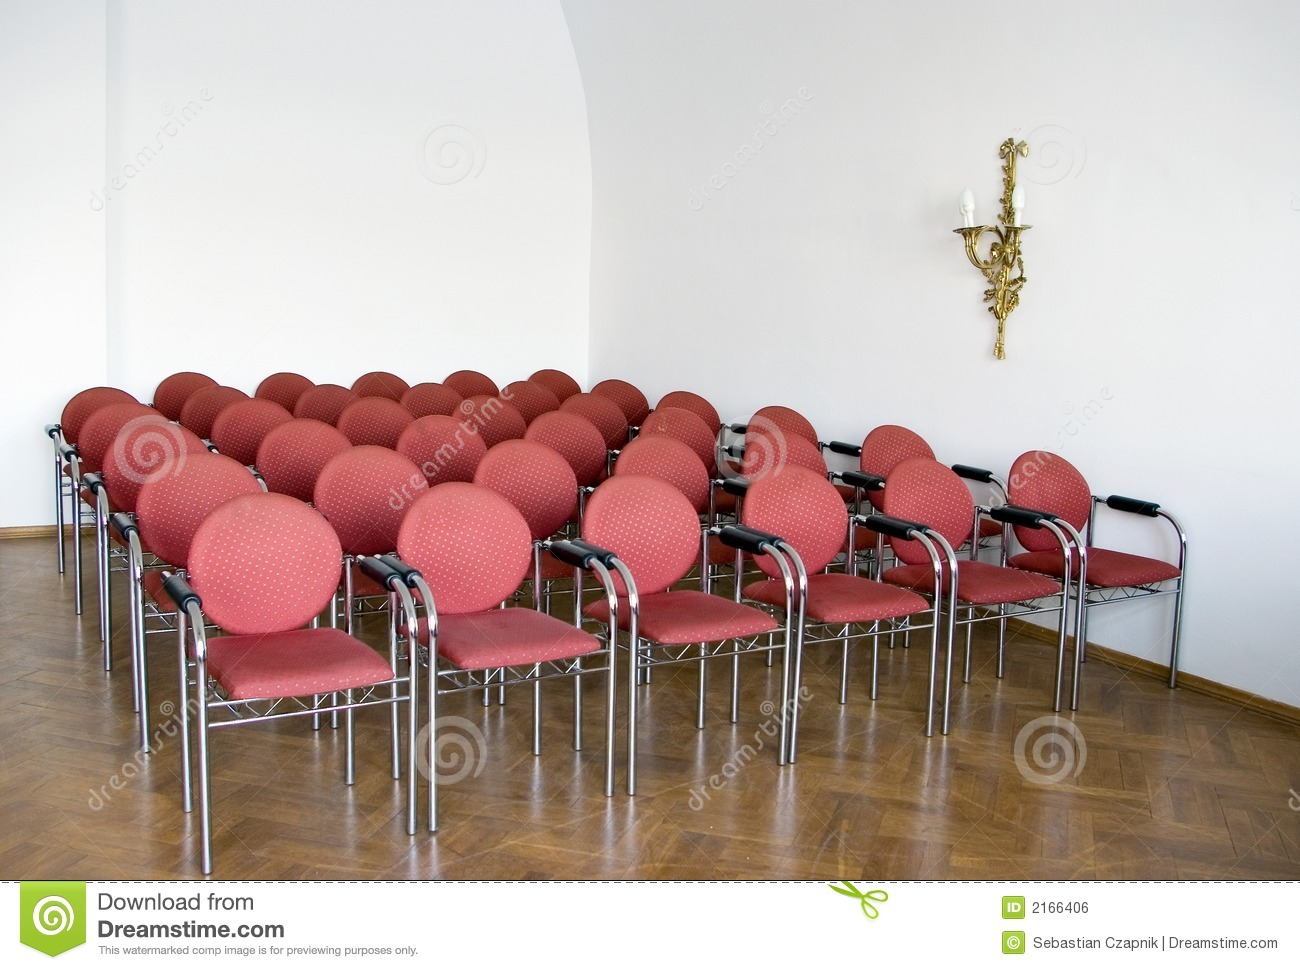 royaltyfree stock photo download red chairs in meeting room